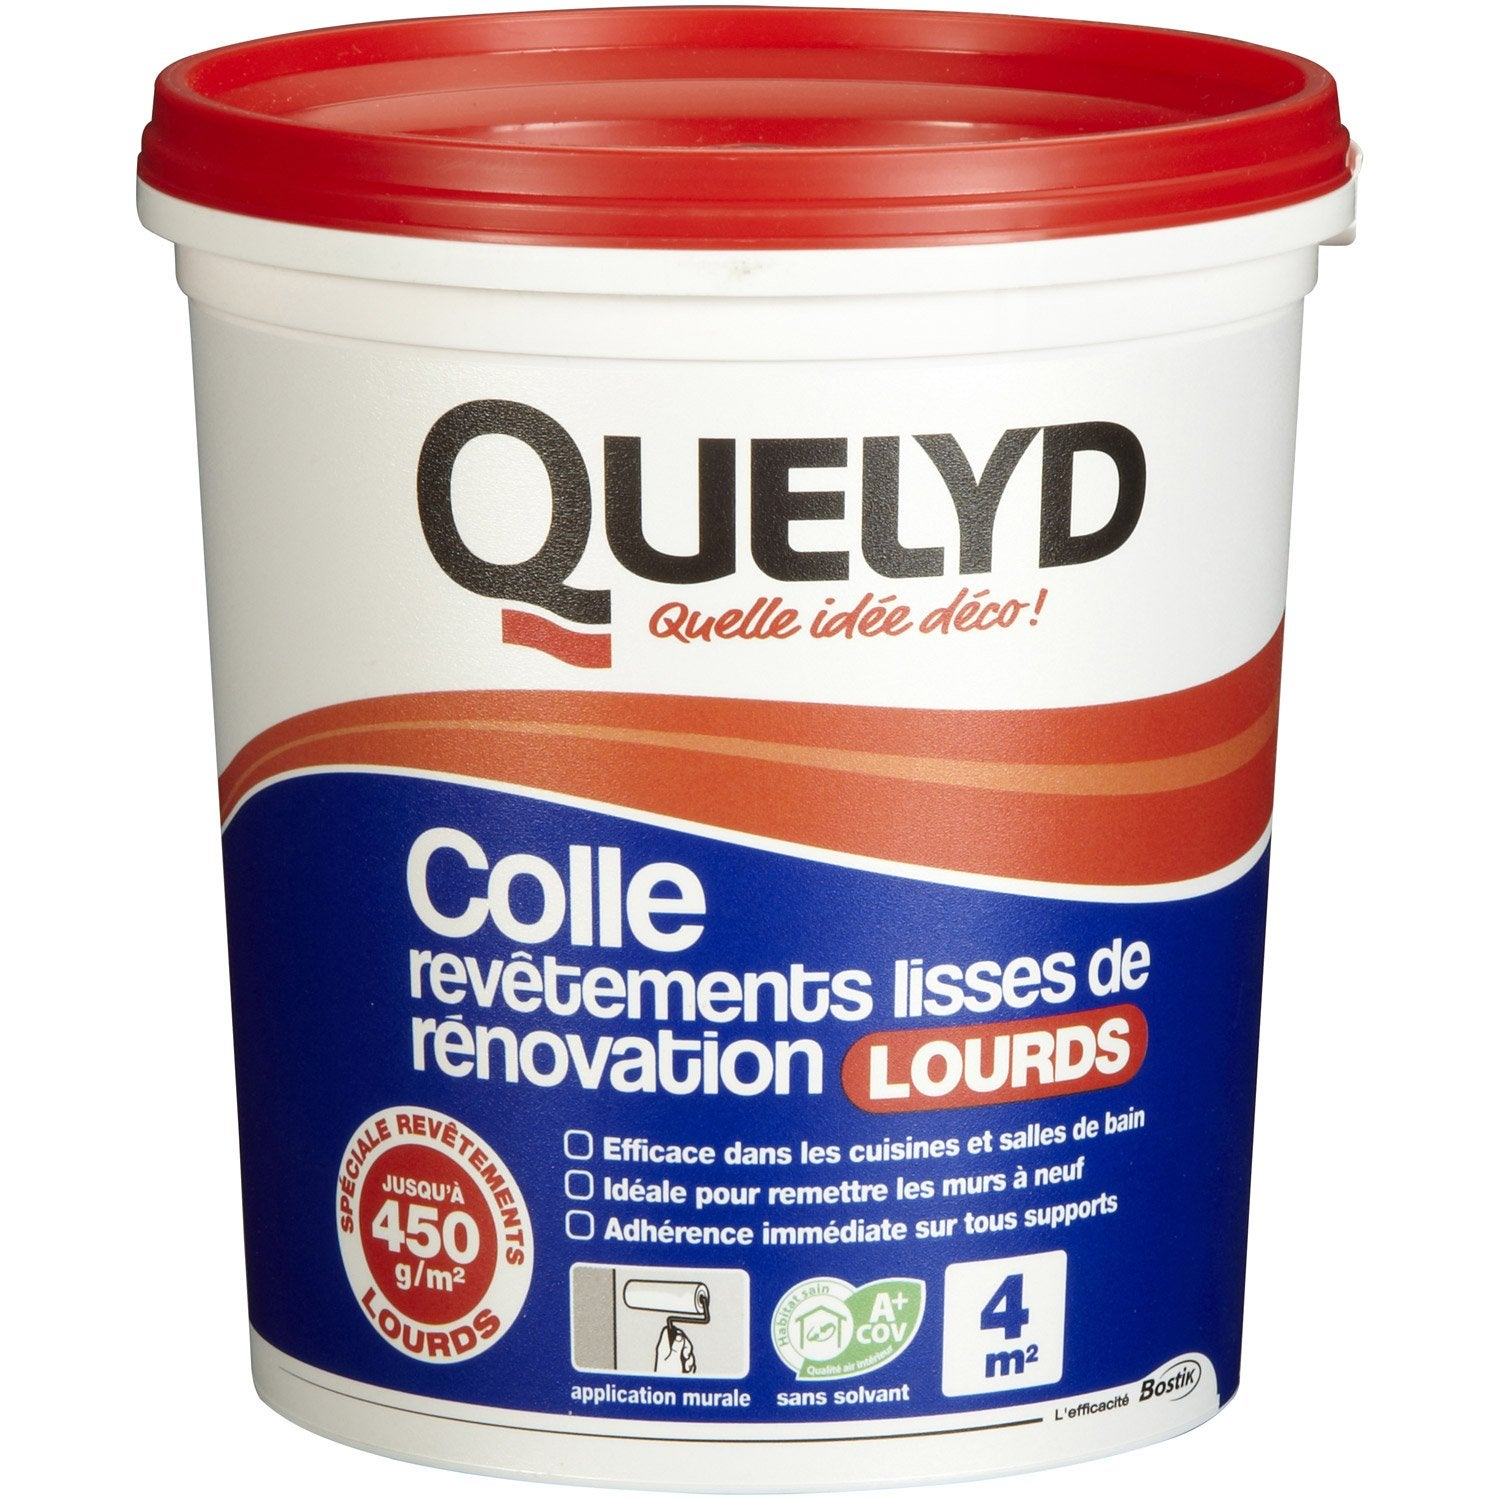 Colle rev tement mural lourd quelyd 1 kg leroy merlin for Leroy merlin revetement mural